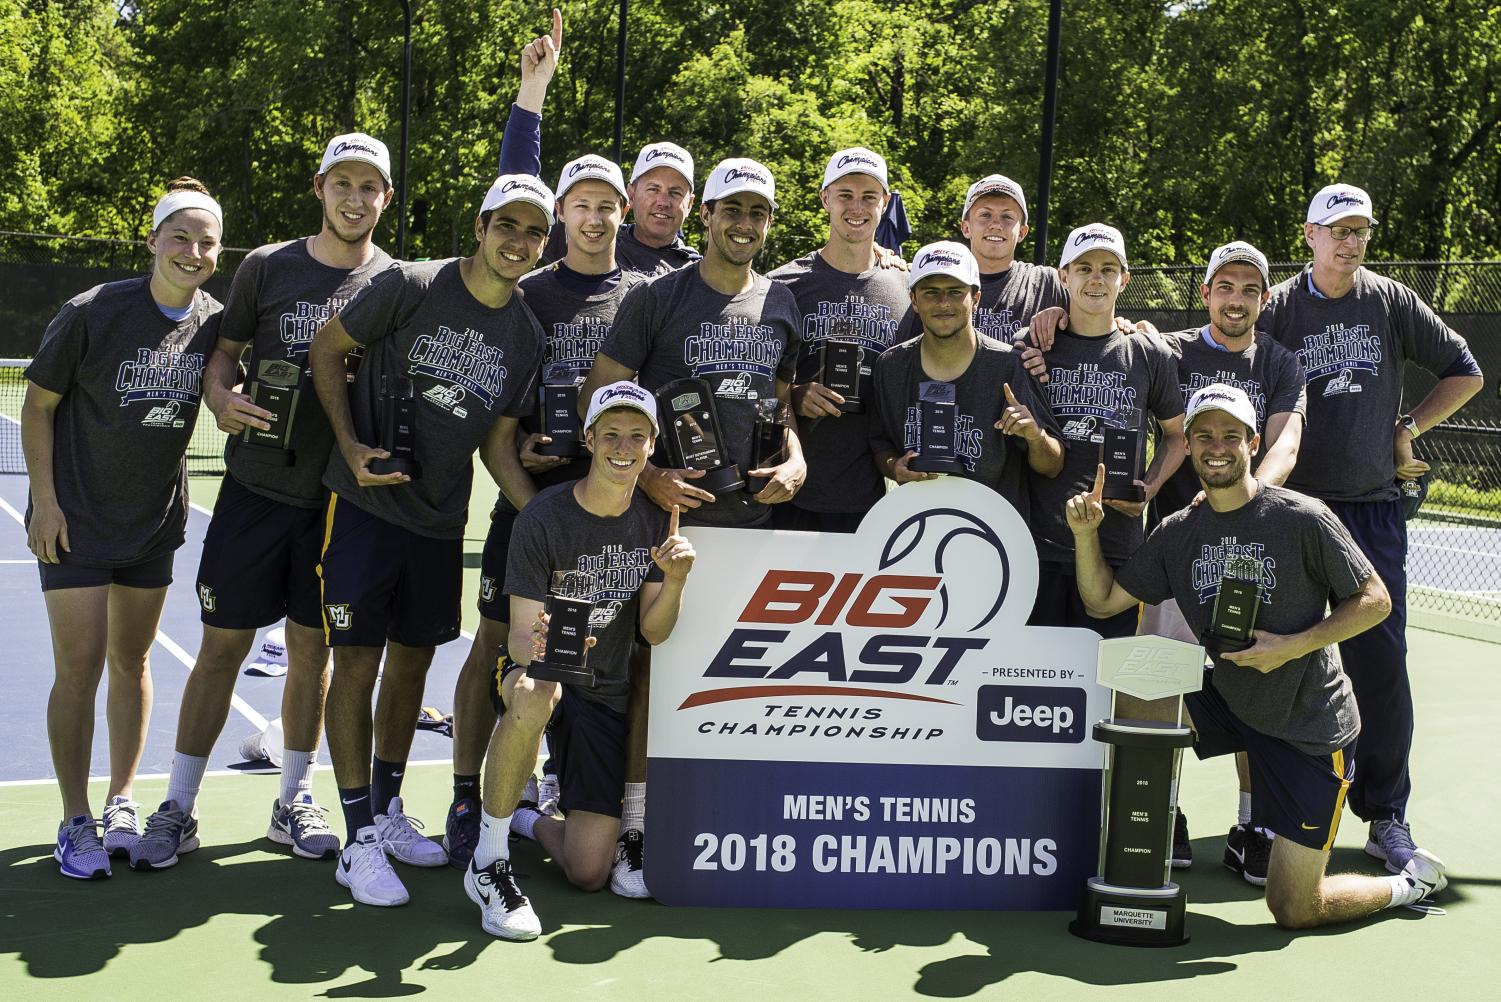 Marquette men's tennis triumphed over the DePaul Blue Demons in the finals of the BIG EAST Tournament. (Photo courtesy of Stephen B. Morton for the BIG EAST Conference.)